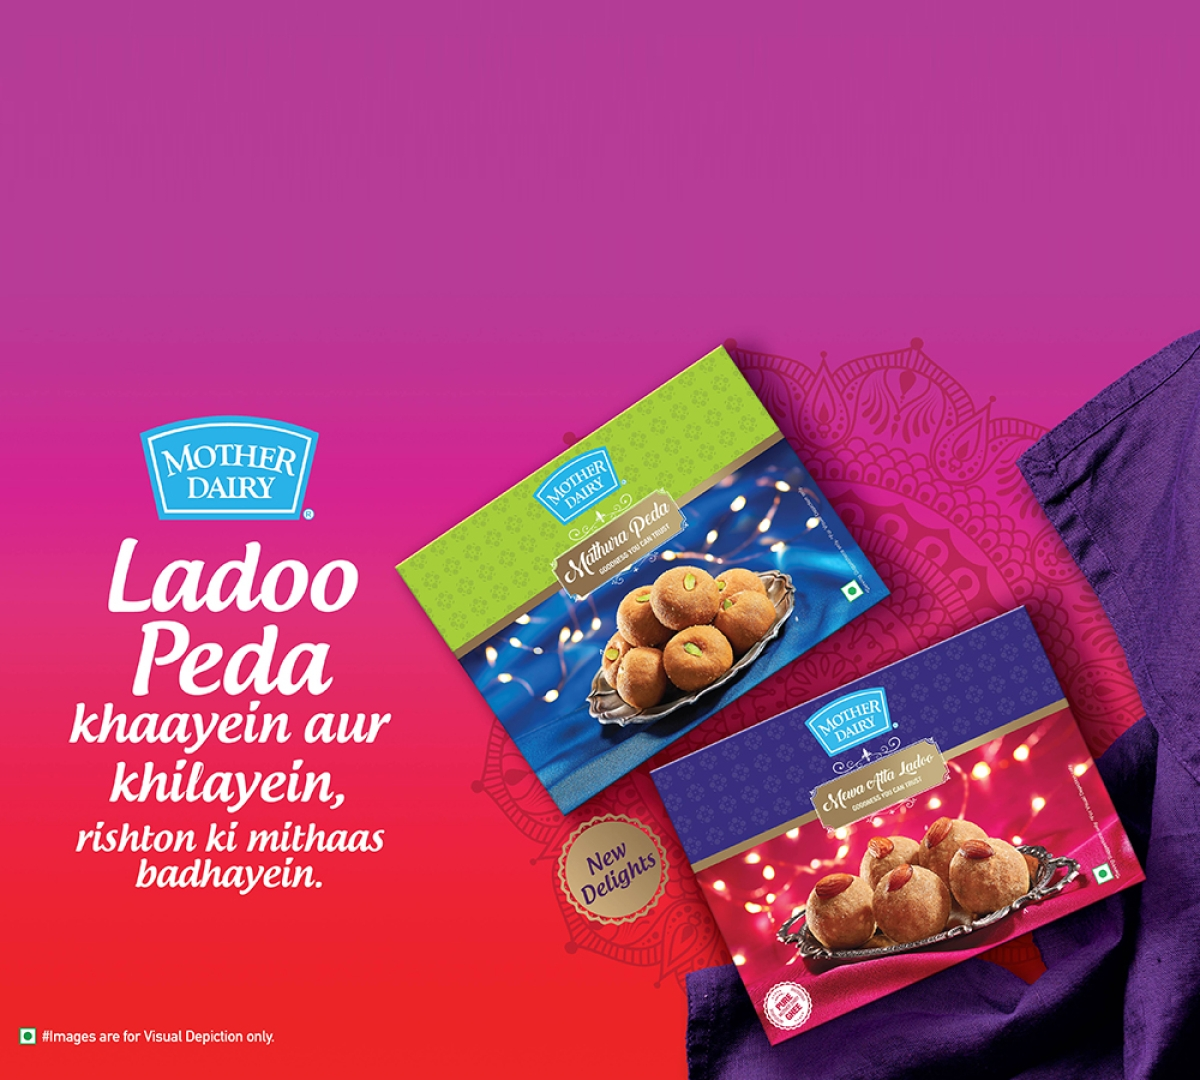 Packaged, cut, ready-to-cook bhindi, drumsticks, haldi paste? Mother Dairy wants to rescue lazy chefs...